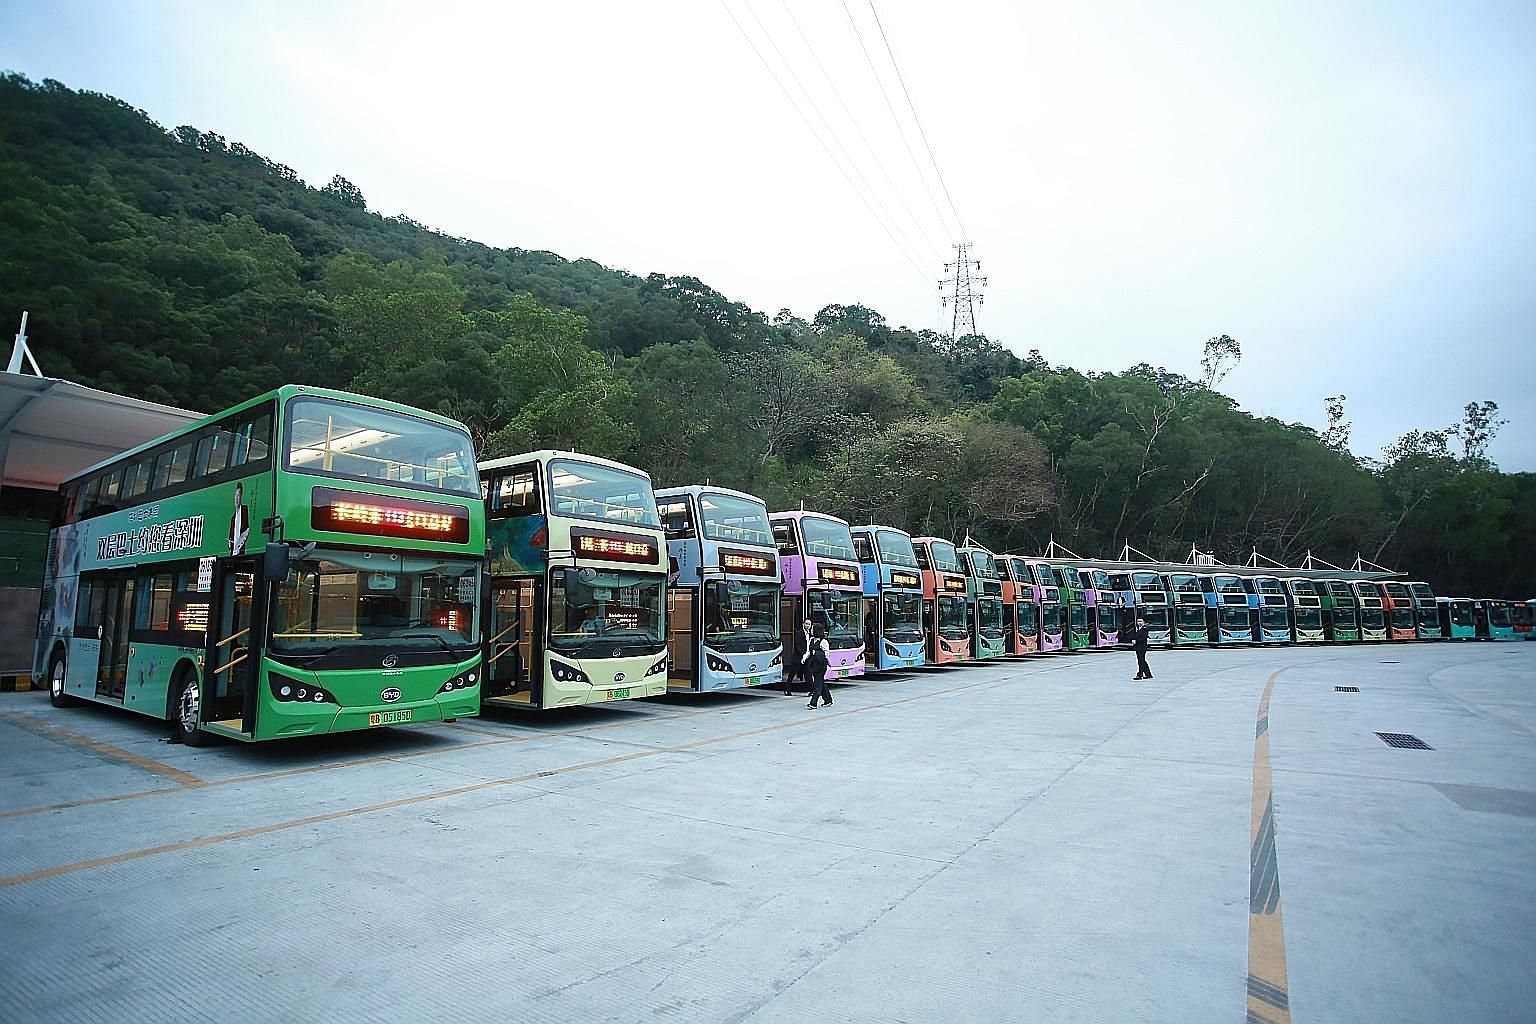 Apart from public buses, Shenzhen Bus Group's business covers taxis, limousine and car rental services, bus advertising services, property development and management, new energy, big data and financing. It has a fleet of some 11,000 vehicles.